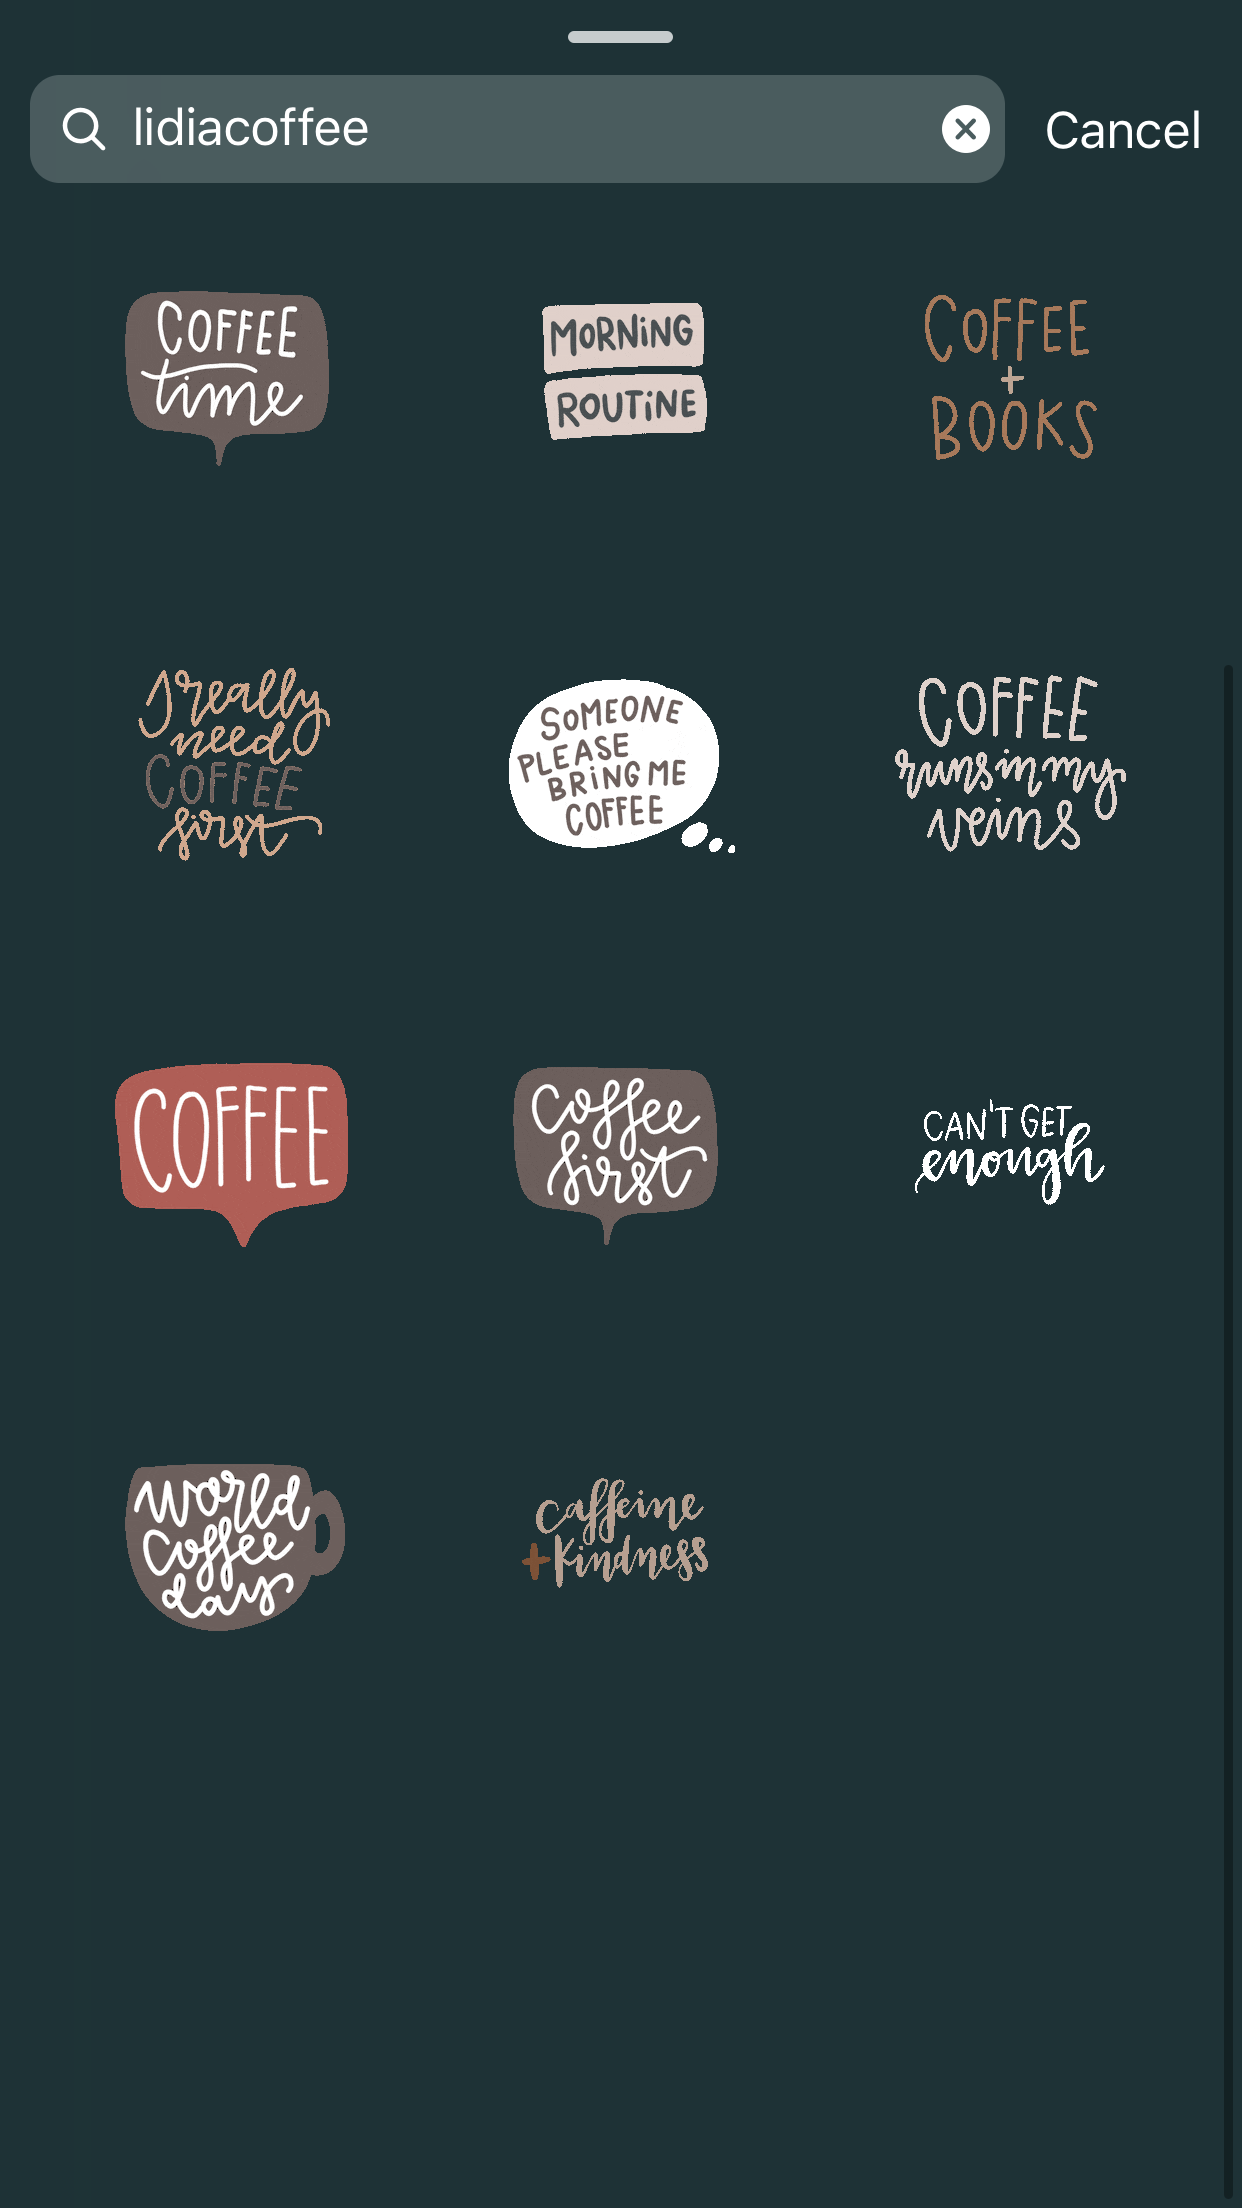 Coffee Gif On Instagram